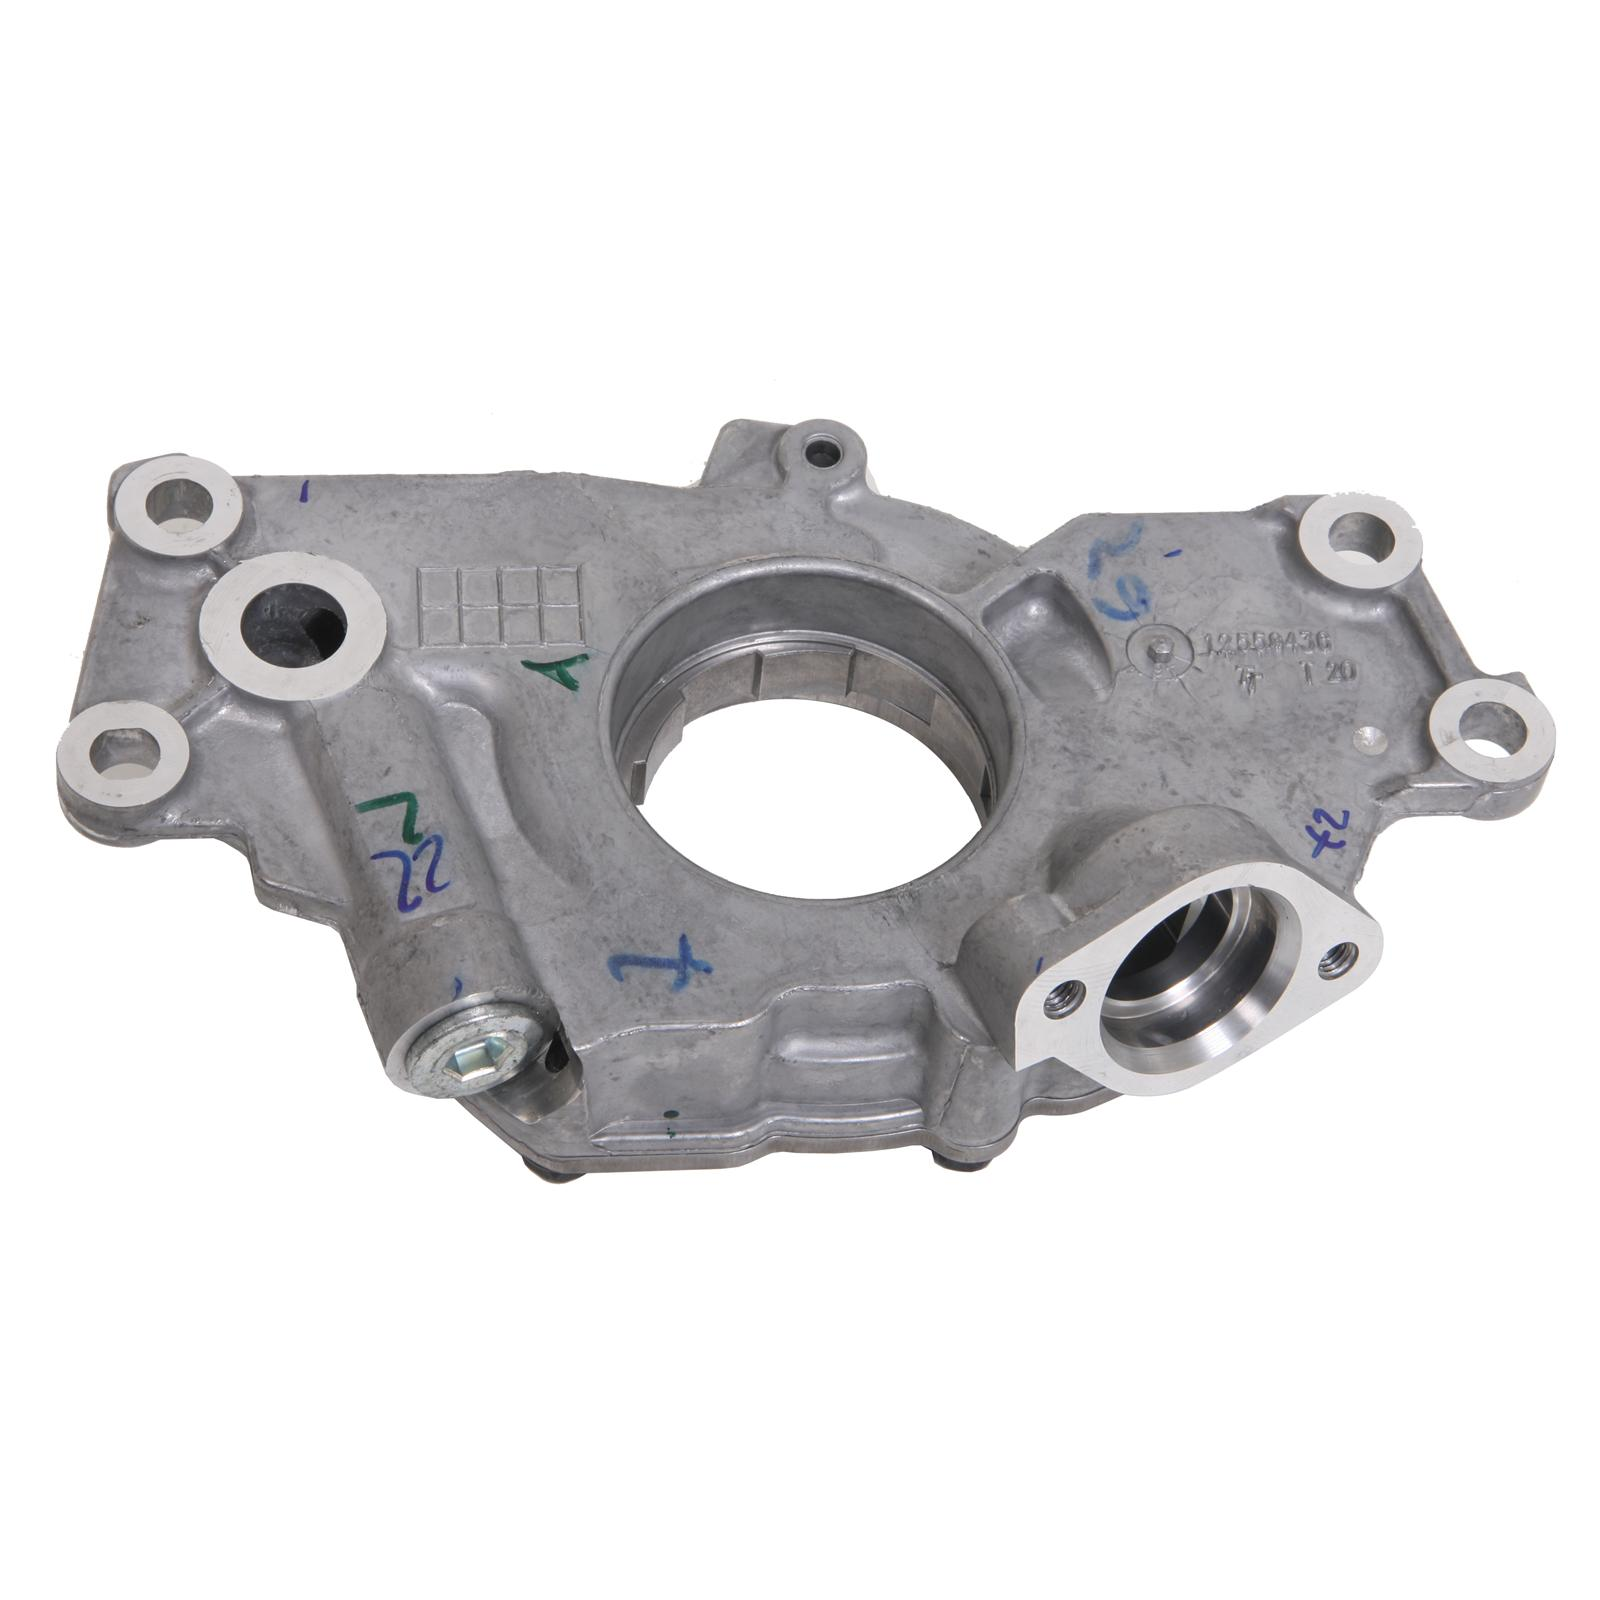 LS Series GM Replacement Oil Pump for LS1, LS2, LS3, LS6